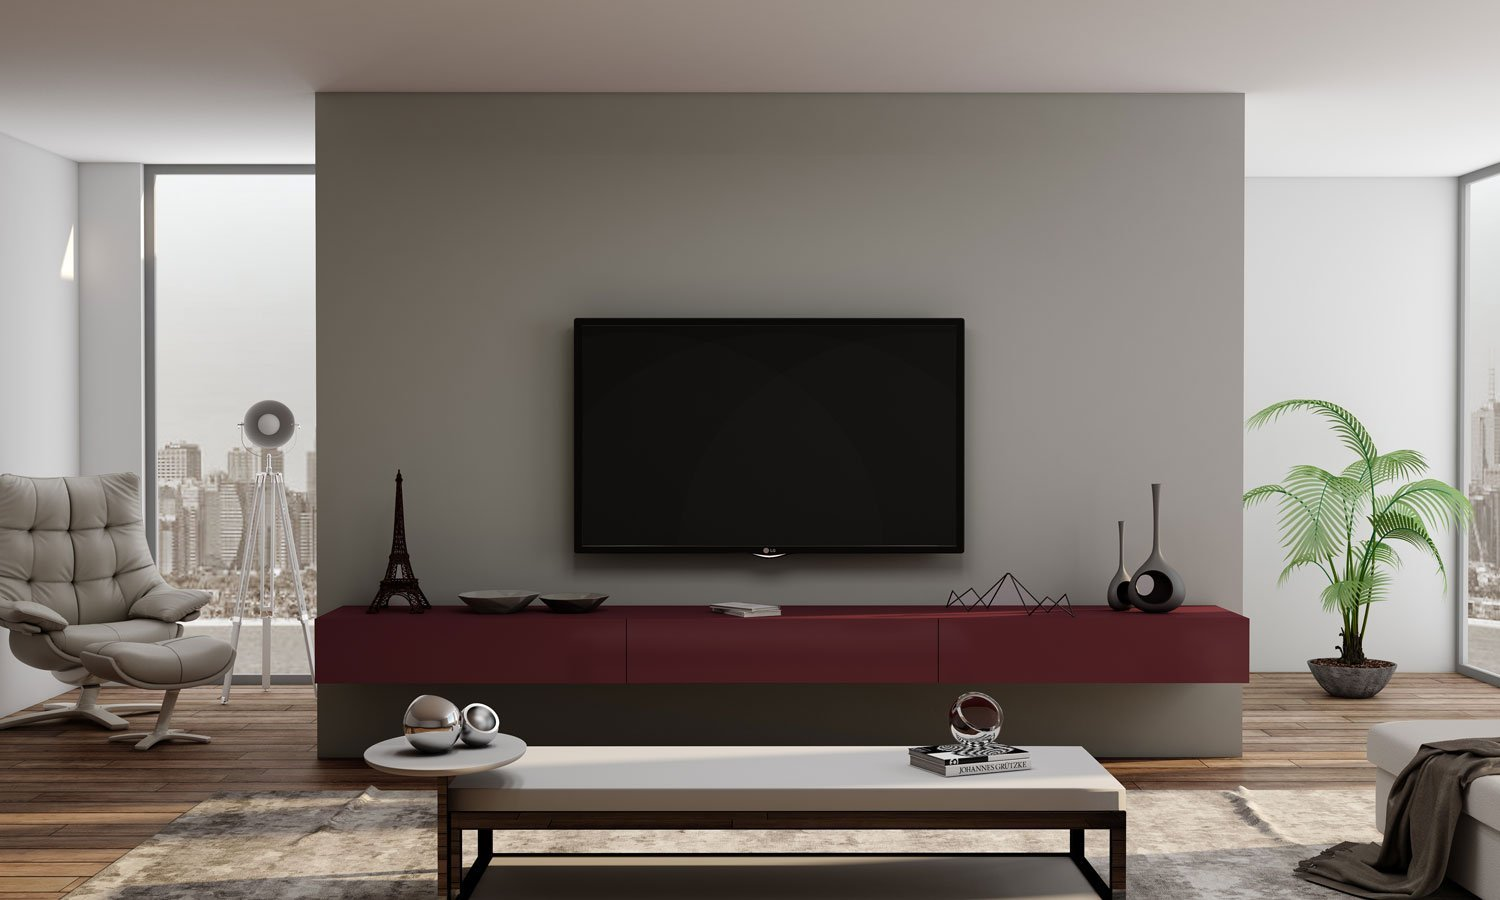 TV unit with Storage Drawers in Red Velvet finish